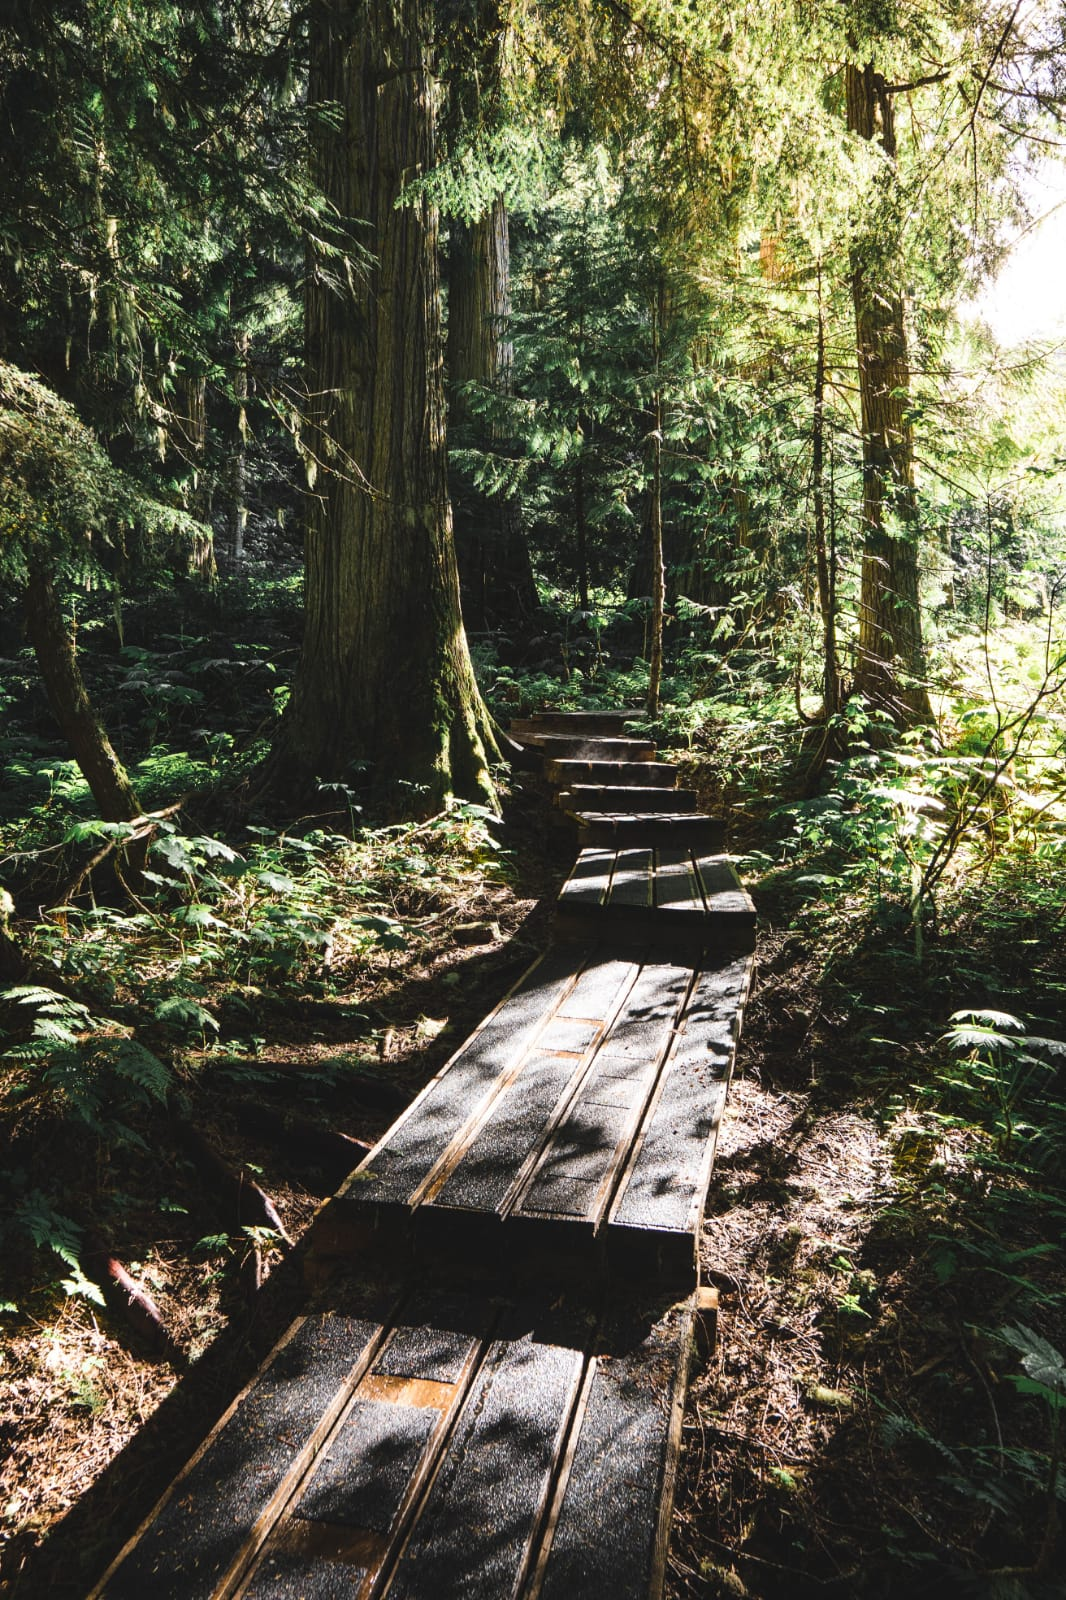 A wooden path in a forest